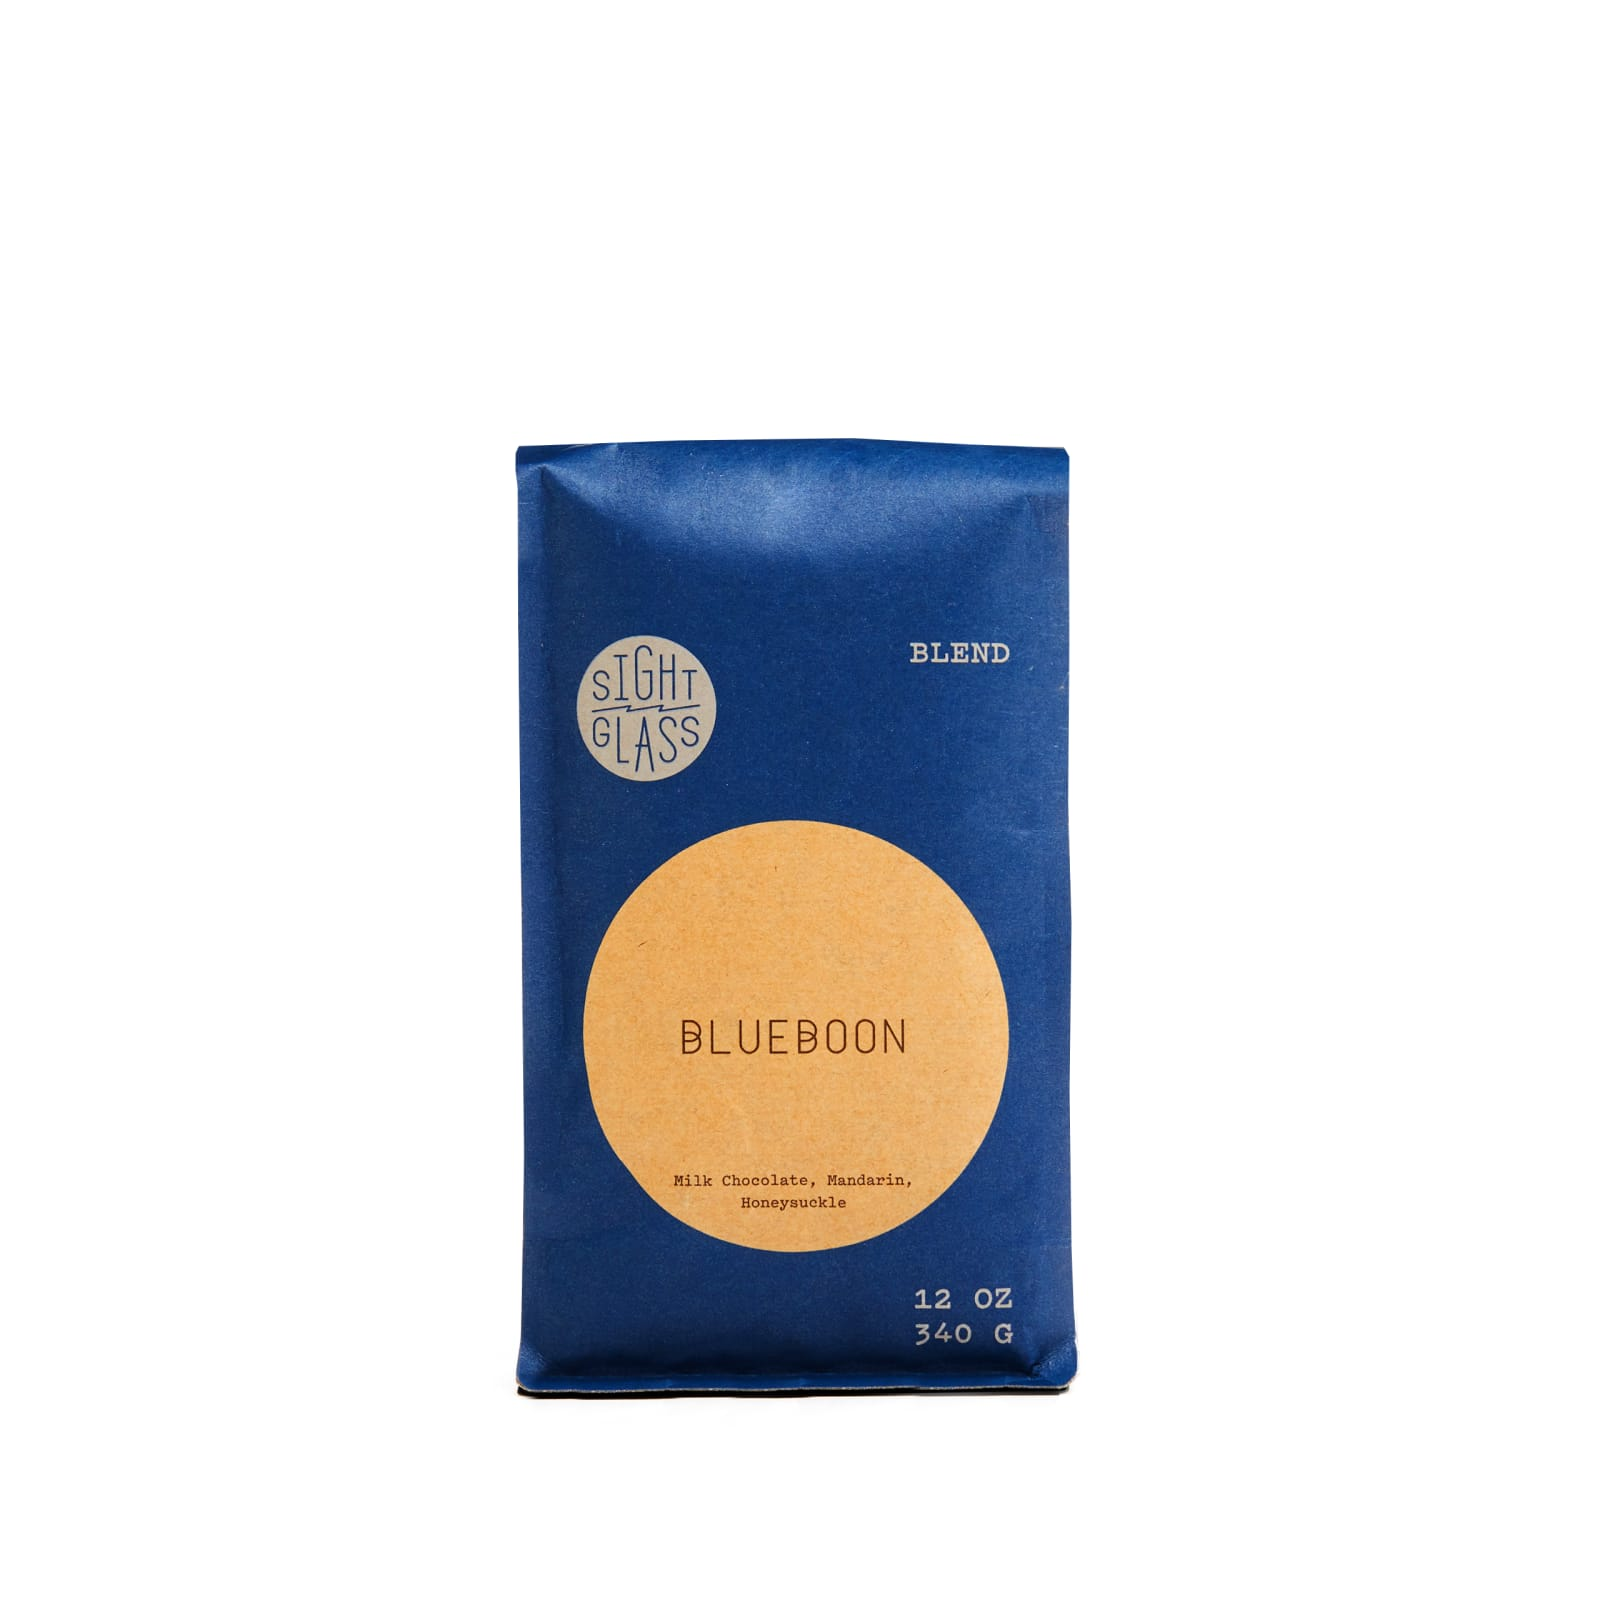 Blueboon - 5 lb bag